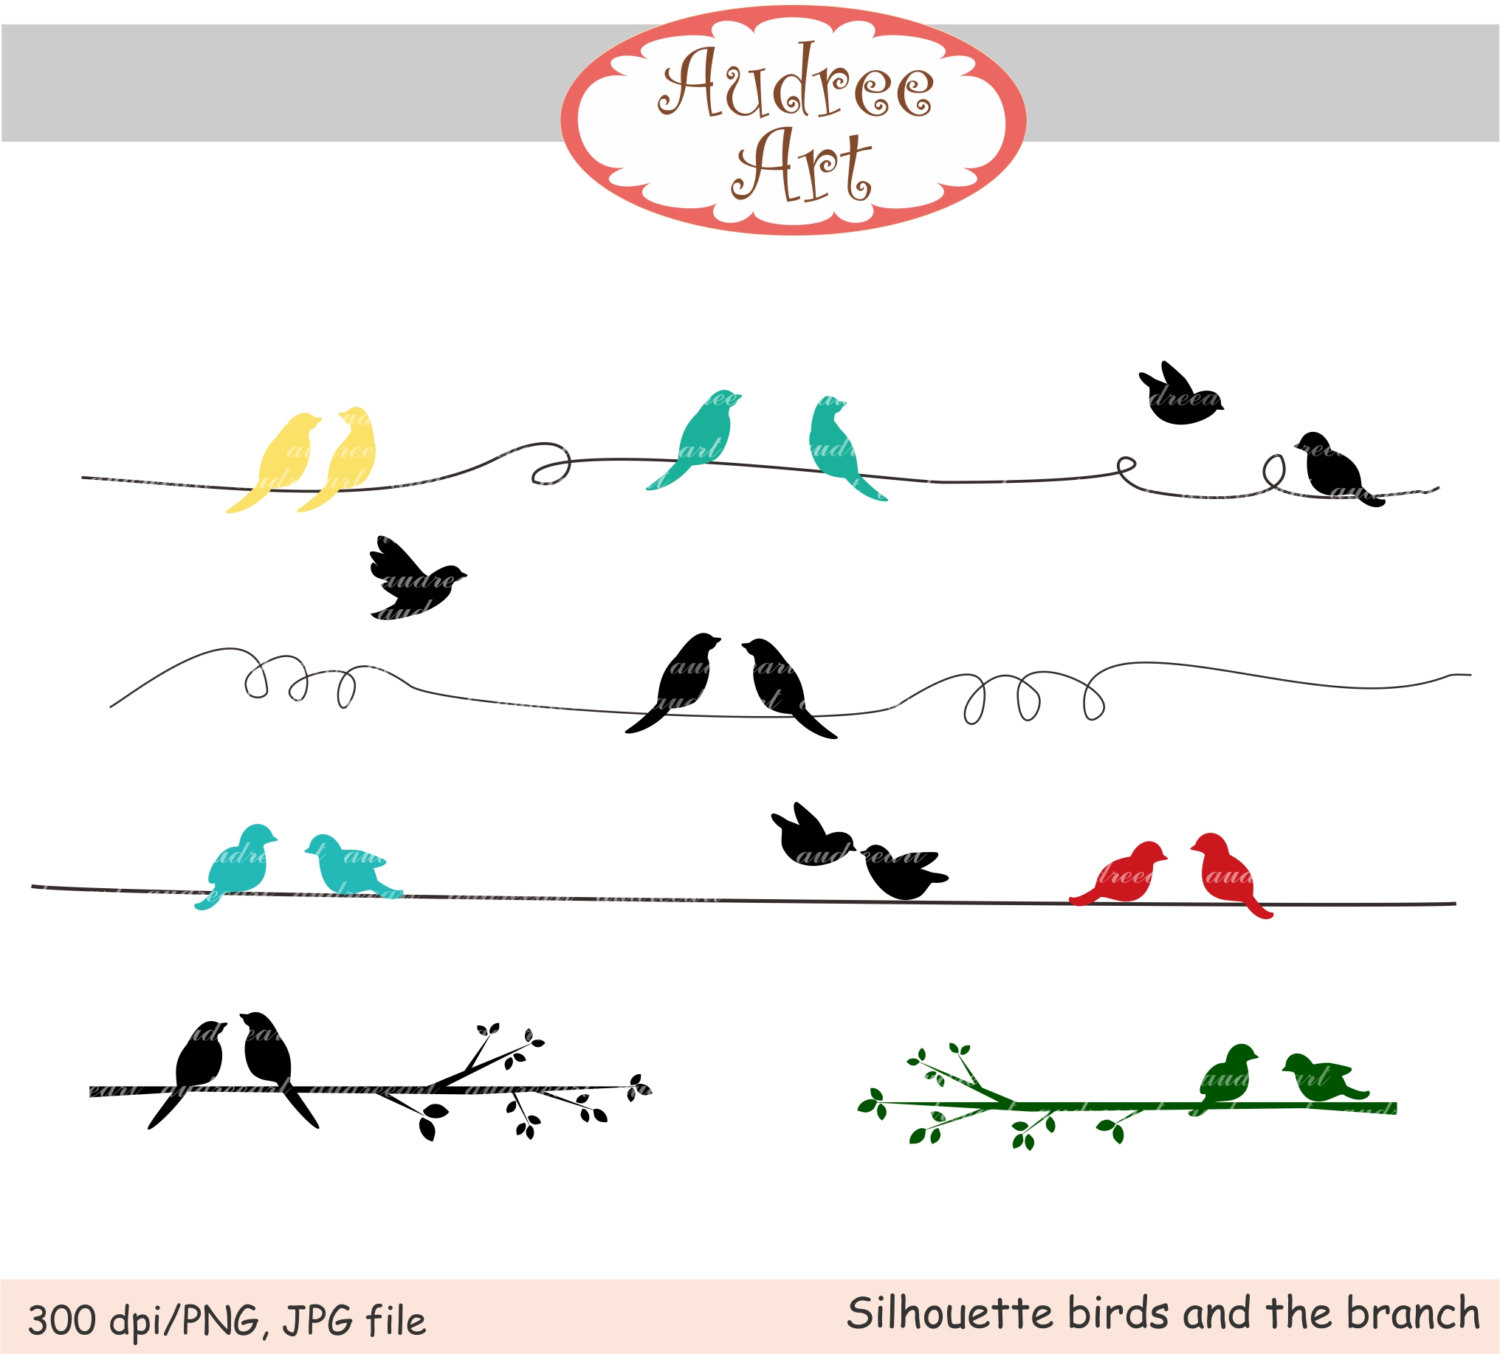 Brds clipart branch Silhouette Clip birds by Nature